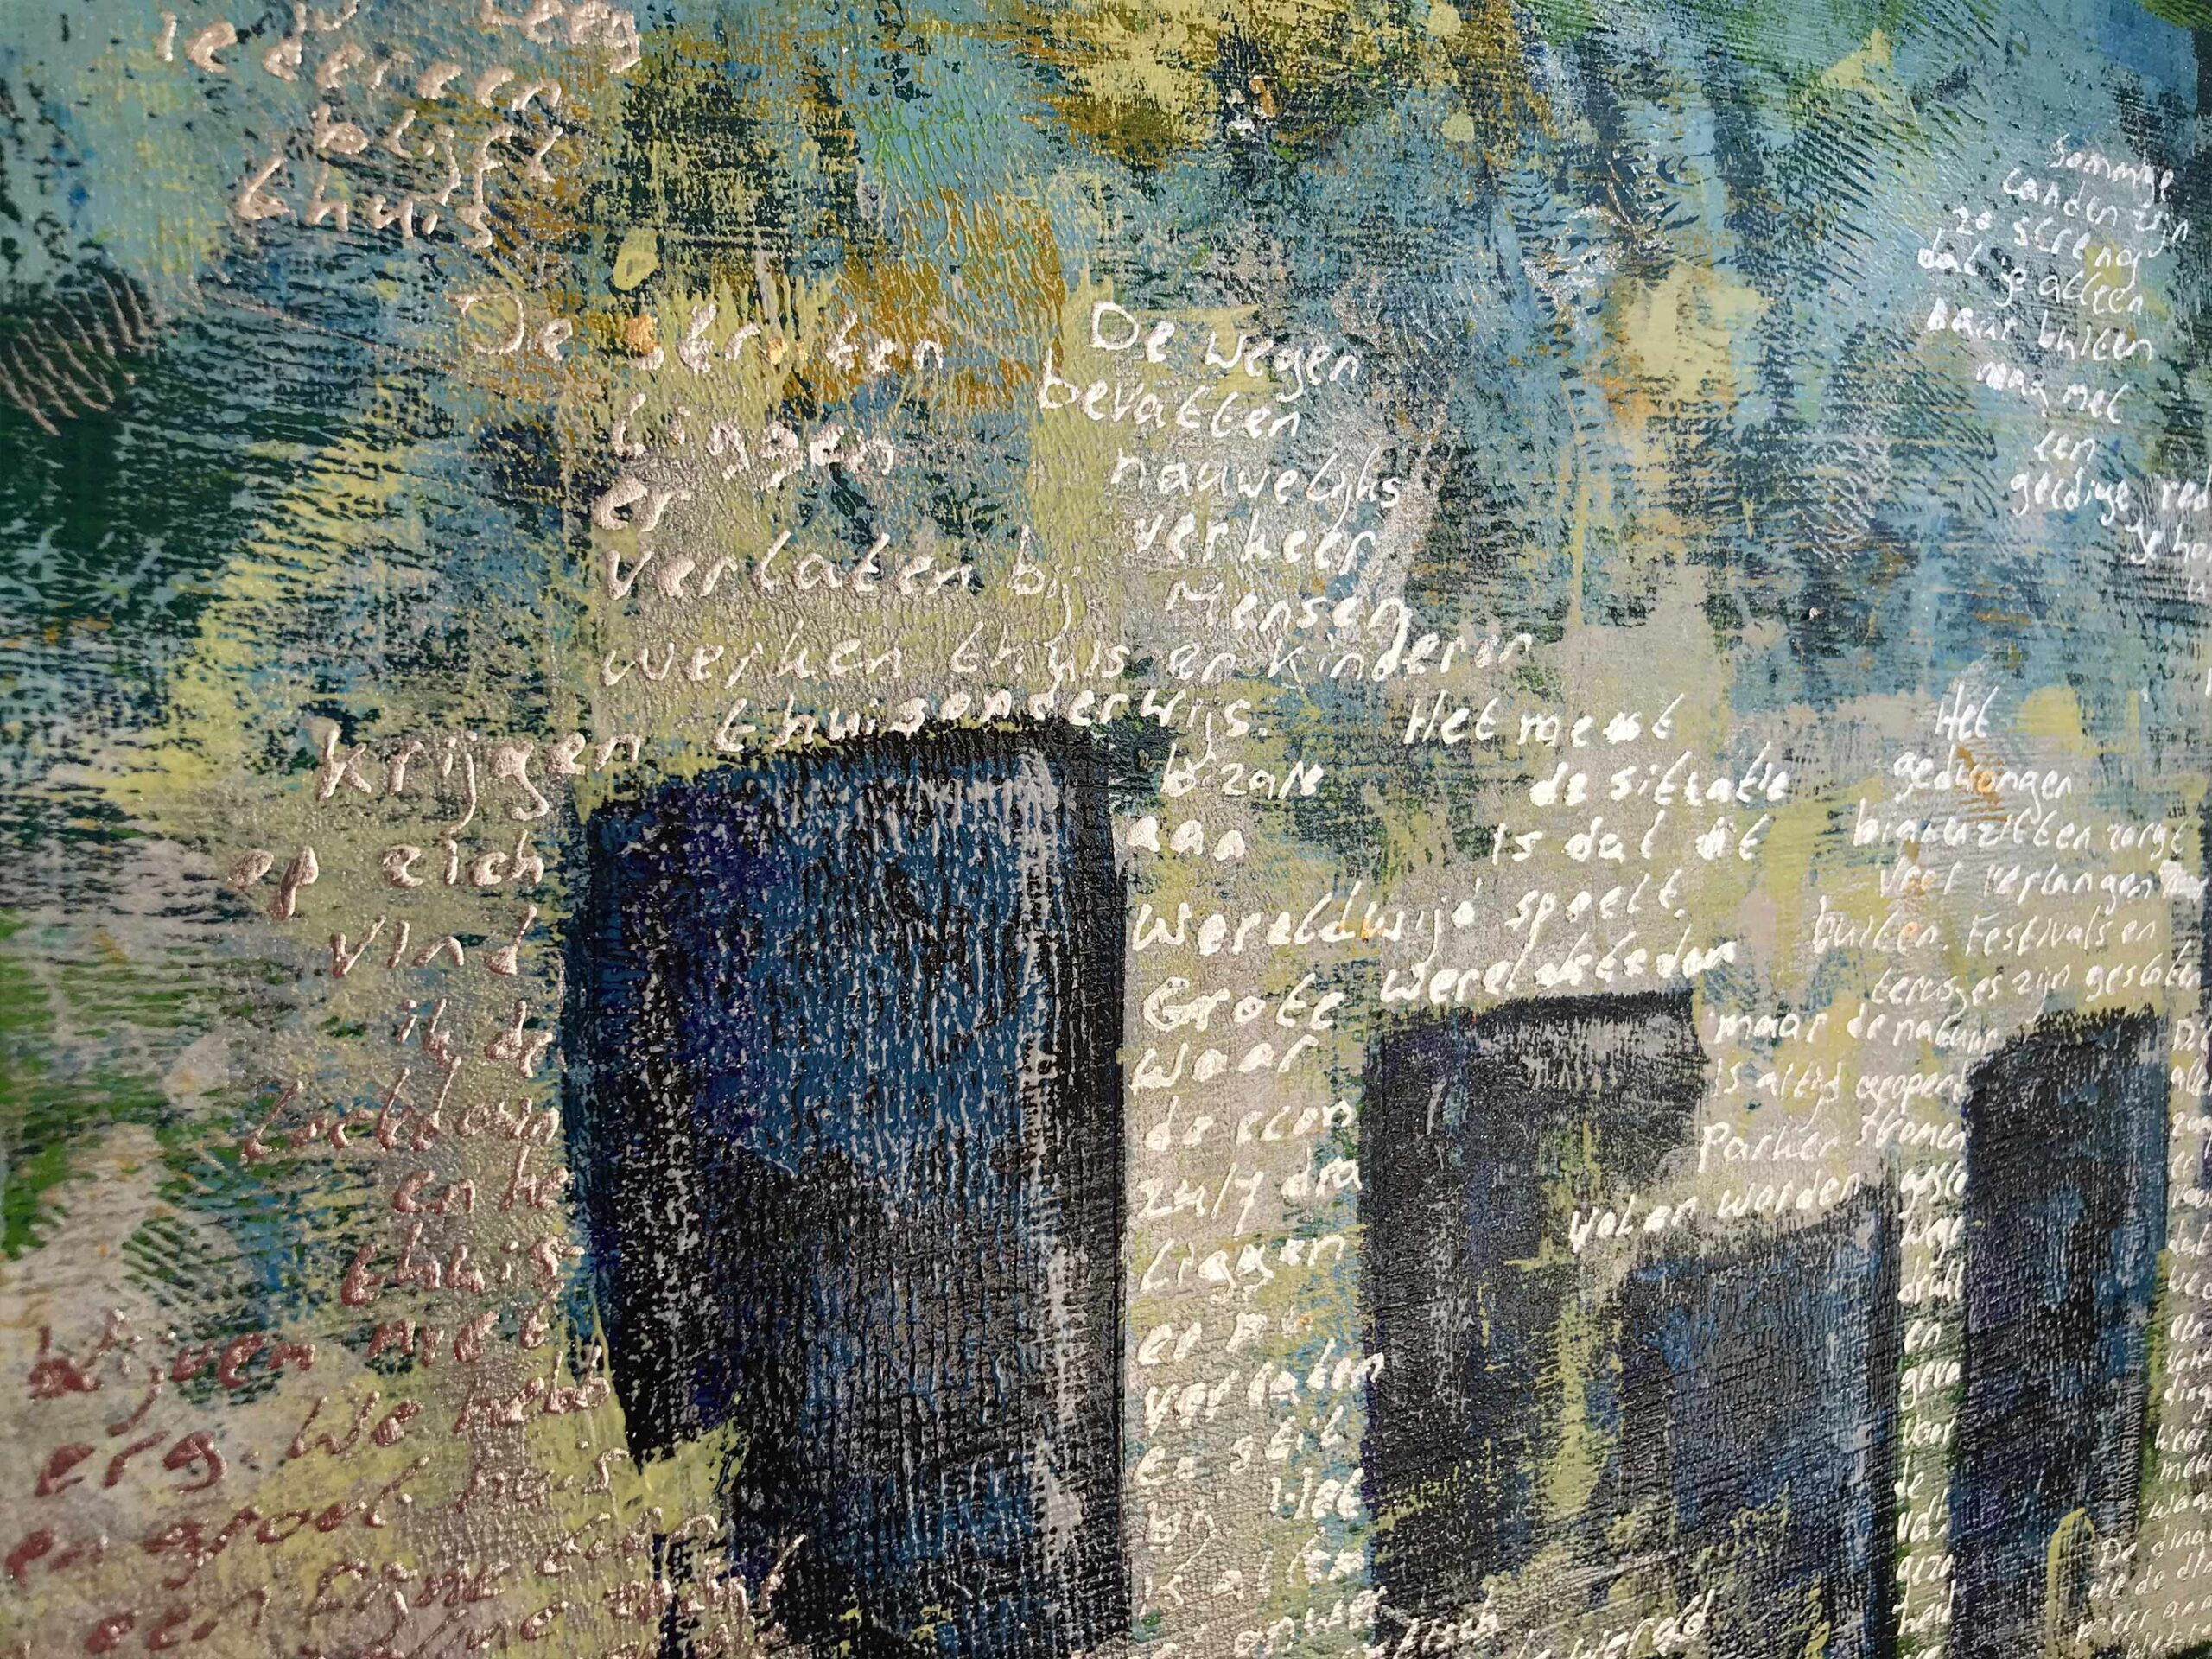 2 MAAL EE | Elise Eekhout | Corona Stories | Tranquil City 05 | detail